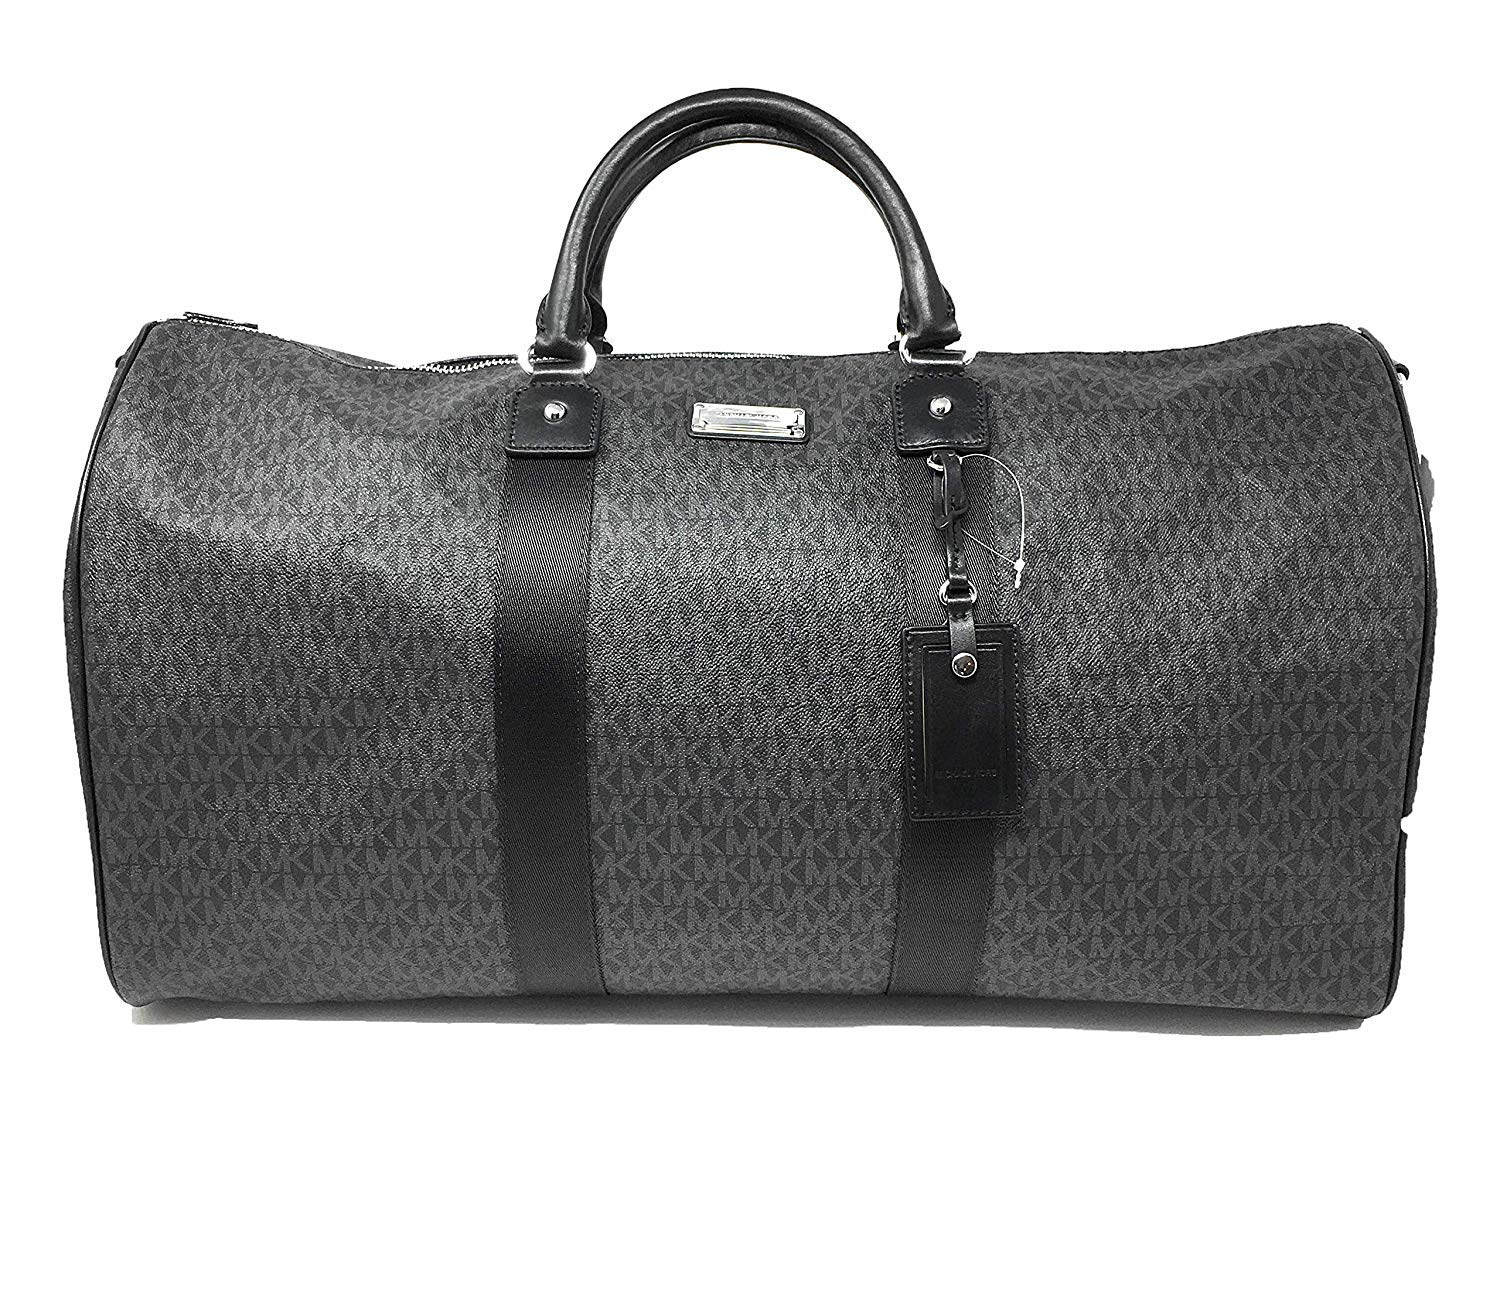 3af7ab11ddd5fd Amazon.com | Michael Kors Leather PVC Travel Logo Duffle Large Bag Printed  Duffel Luggage Black | Travel Duffels